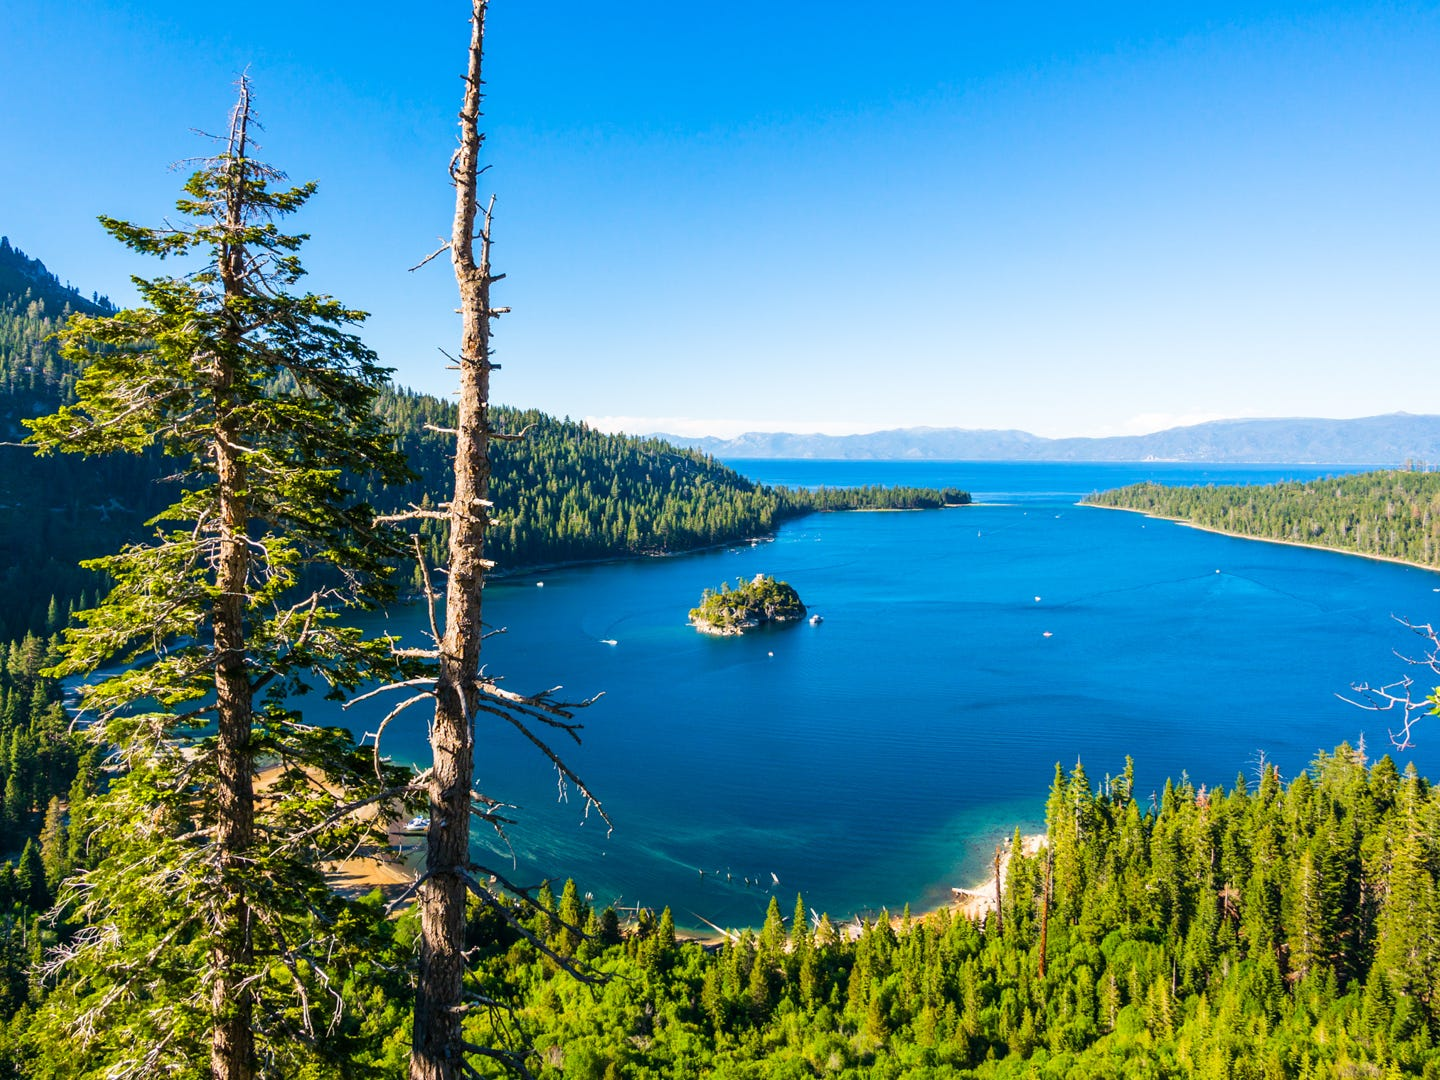 Nevada: Lake Tahoe — one of America's bucket list destinations — straddles California and Nevada, and there's plenty to do on the Nevada side. Be sure to head to the MontBleu Resort Casino & Spa for gambling and spa treatments, rent a paddleboard to explore the lake and take a sunset cruise on the M.S. Dixie II. M.S. Dixie II Captains Dinner Dance Cruise: $94.